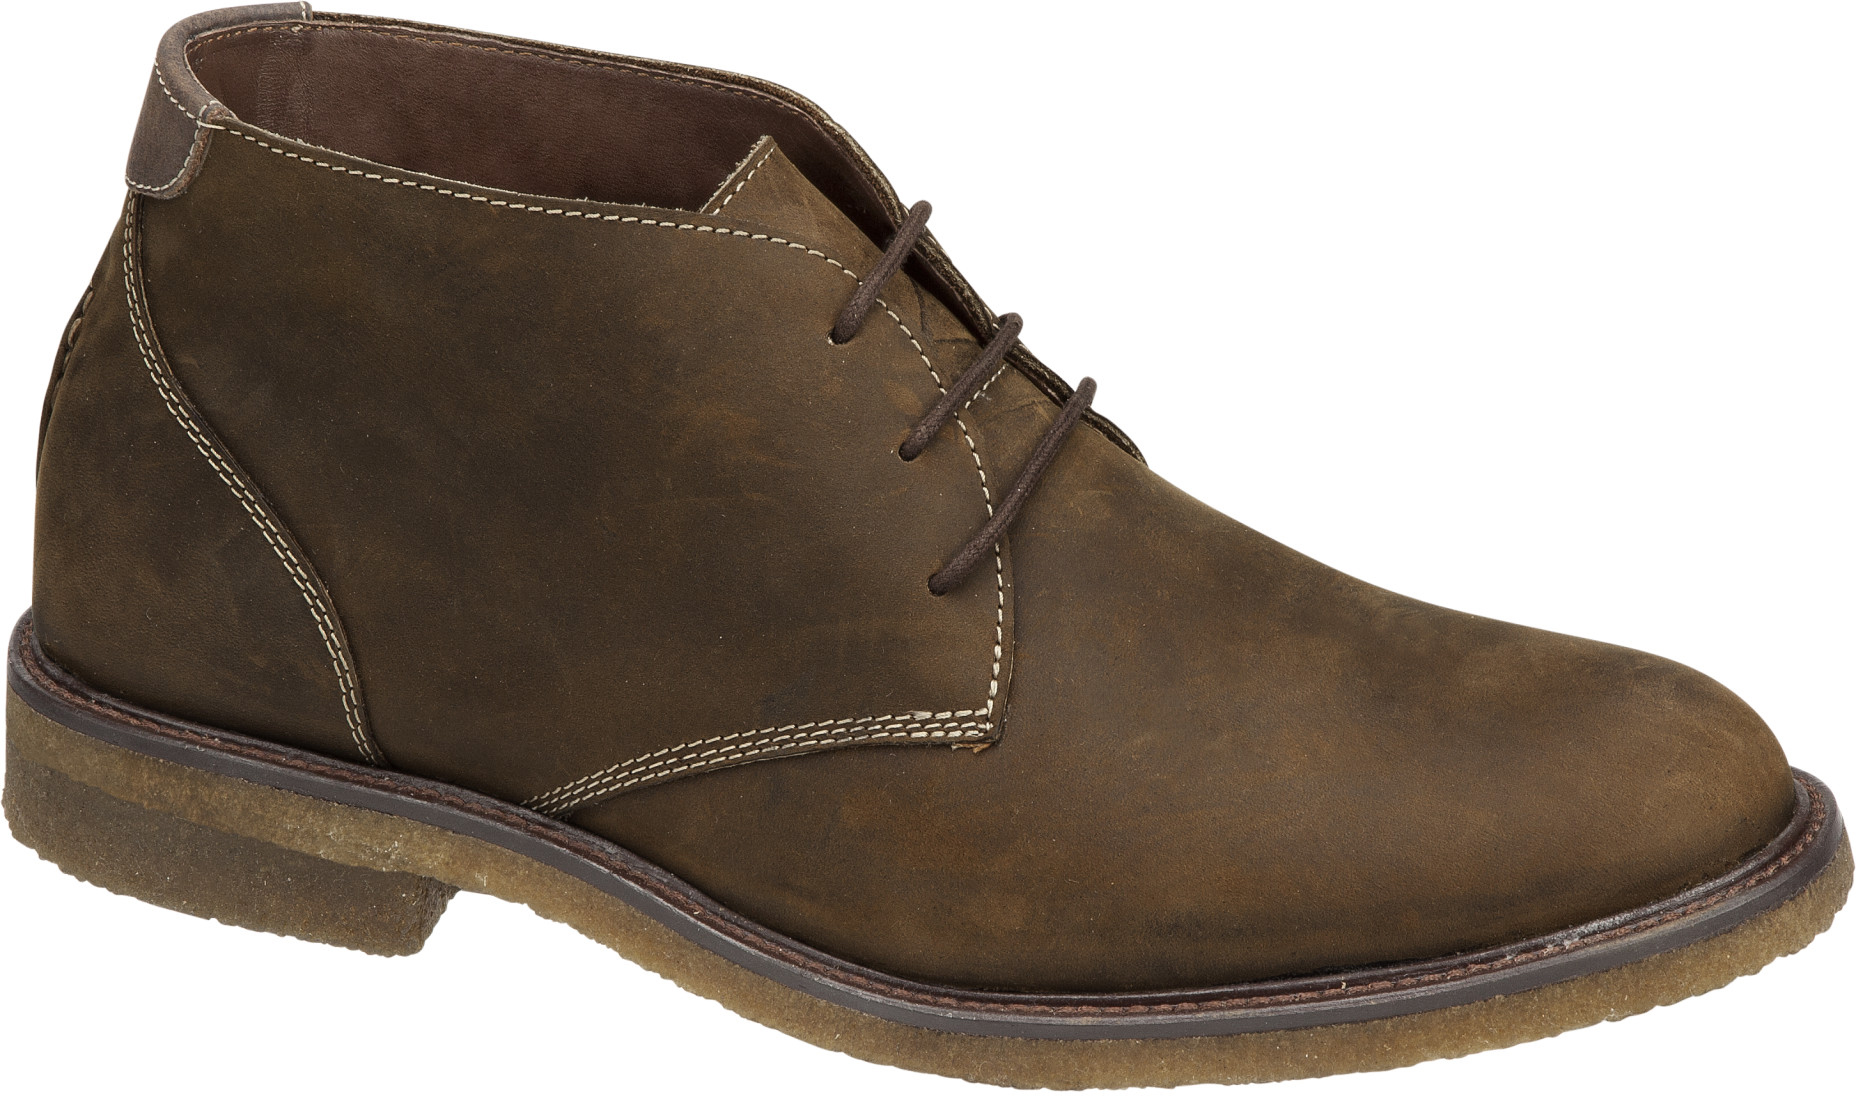 76f4c7f691b Johnston Murphy Men s 25-1870 - Copeland Chukka - The Shoe Mart